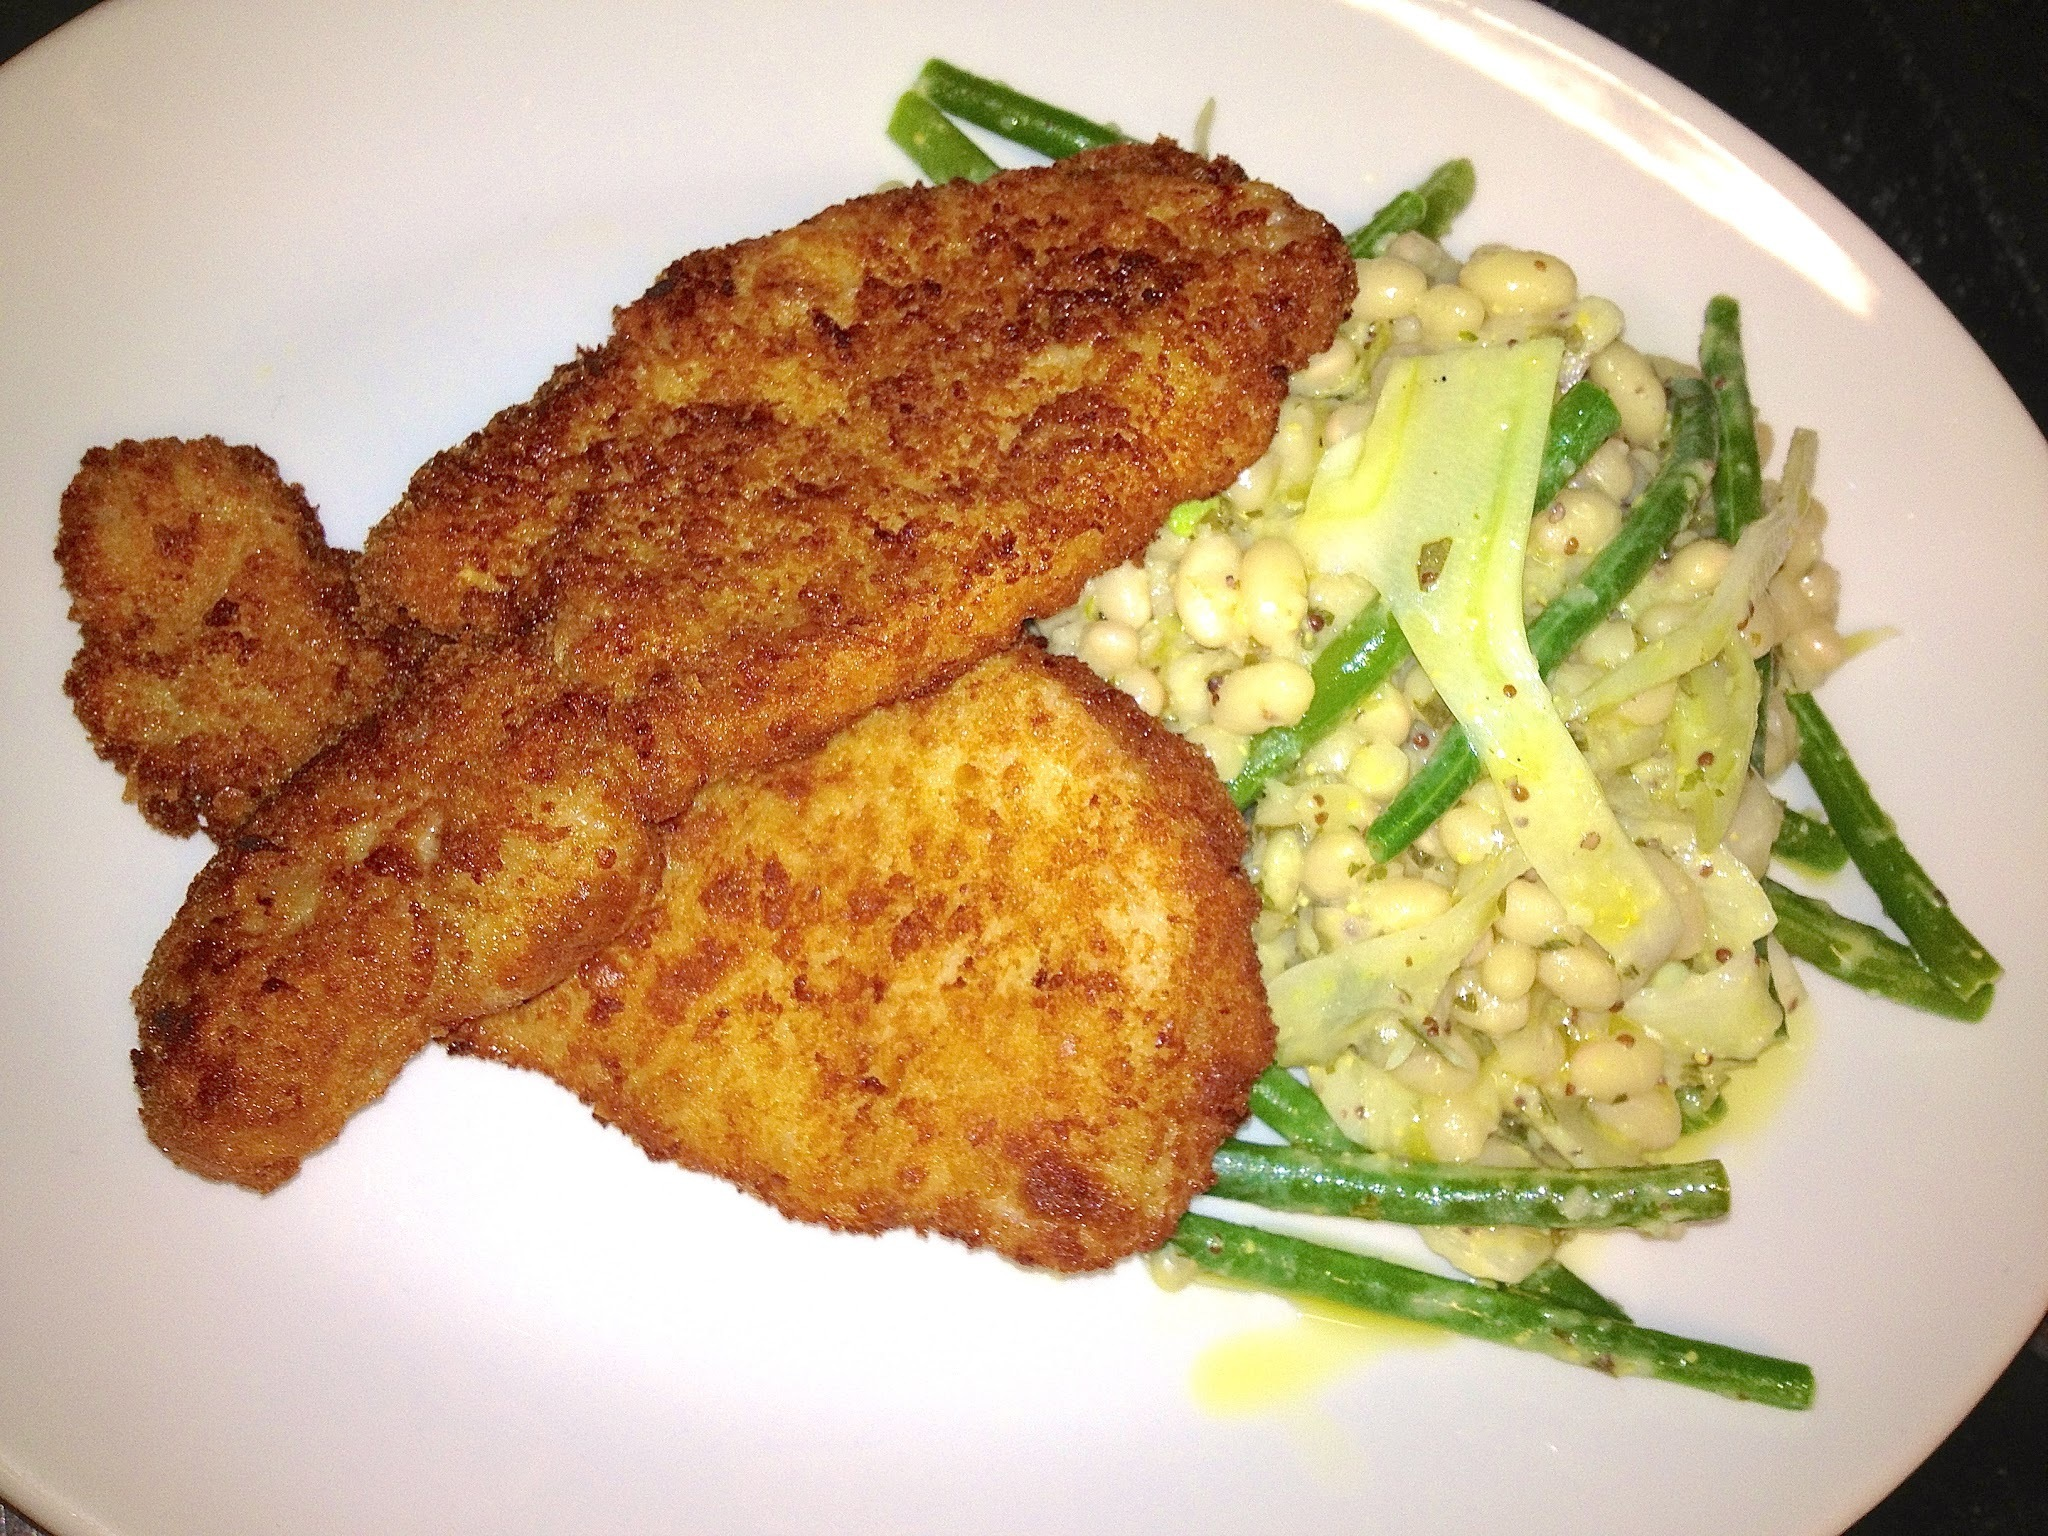 Crispy Pork Escalope with a Warm Salad of Haricot, Green Beans, Shaved Fennel & Mustard